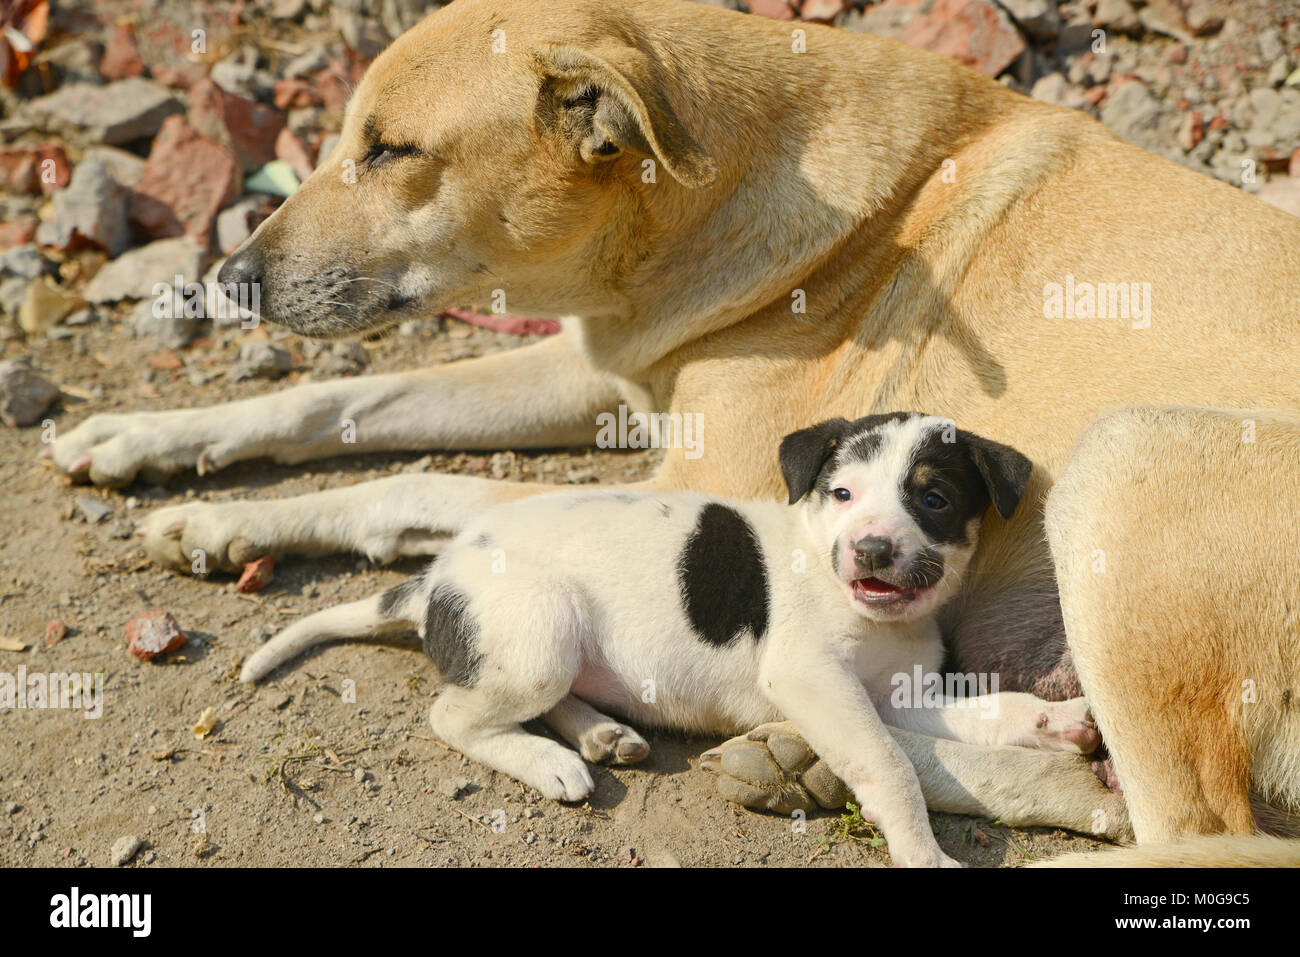 Cute puppy with mother - Stock Image